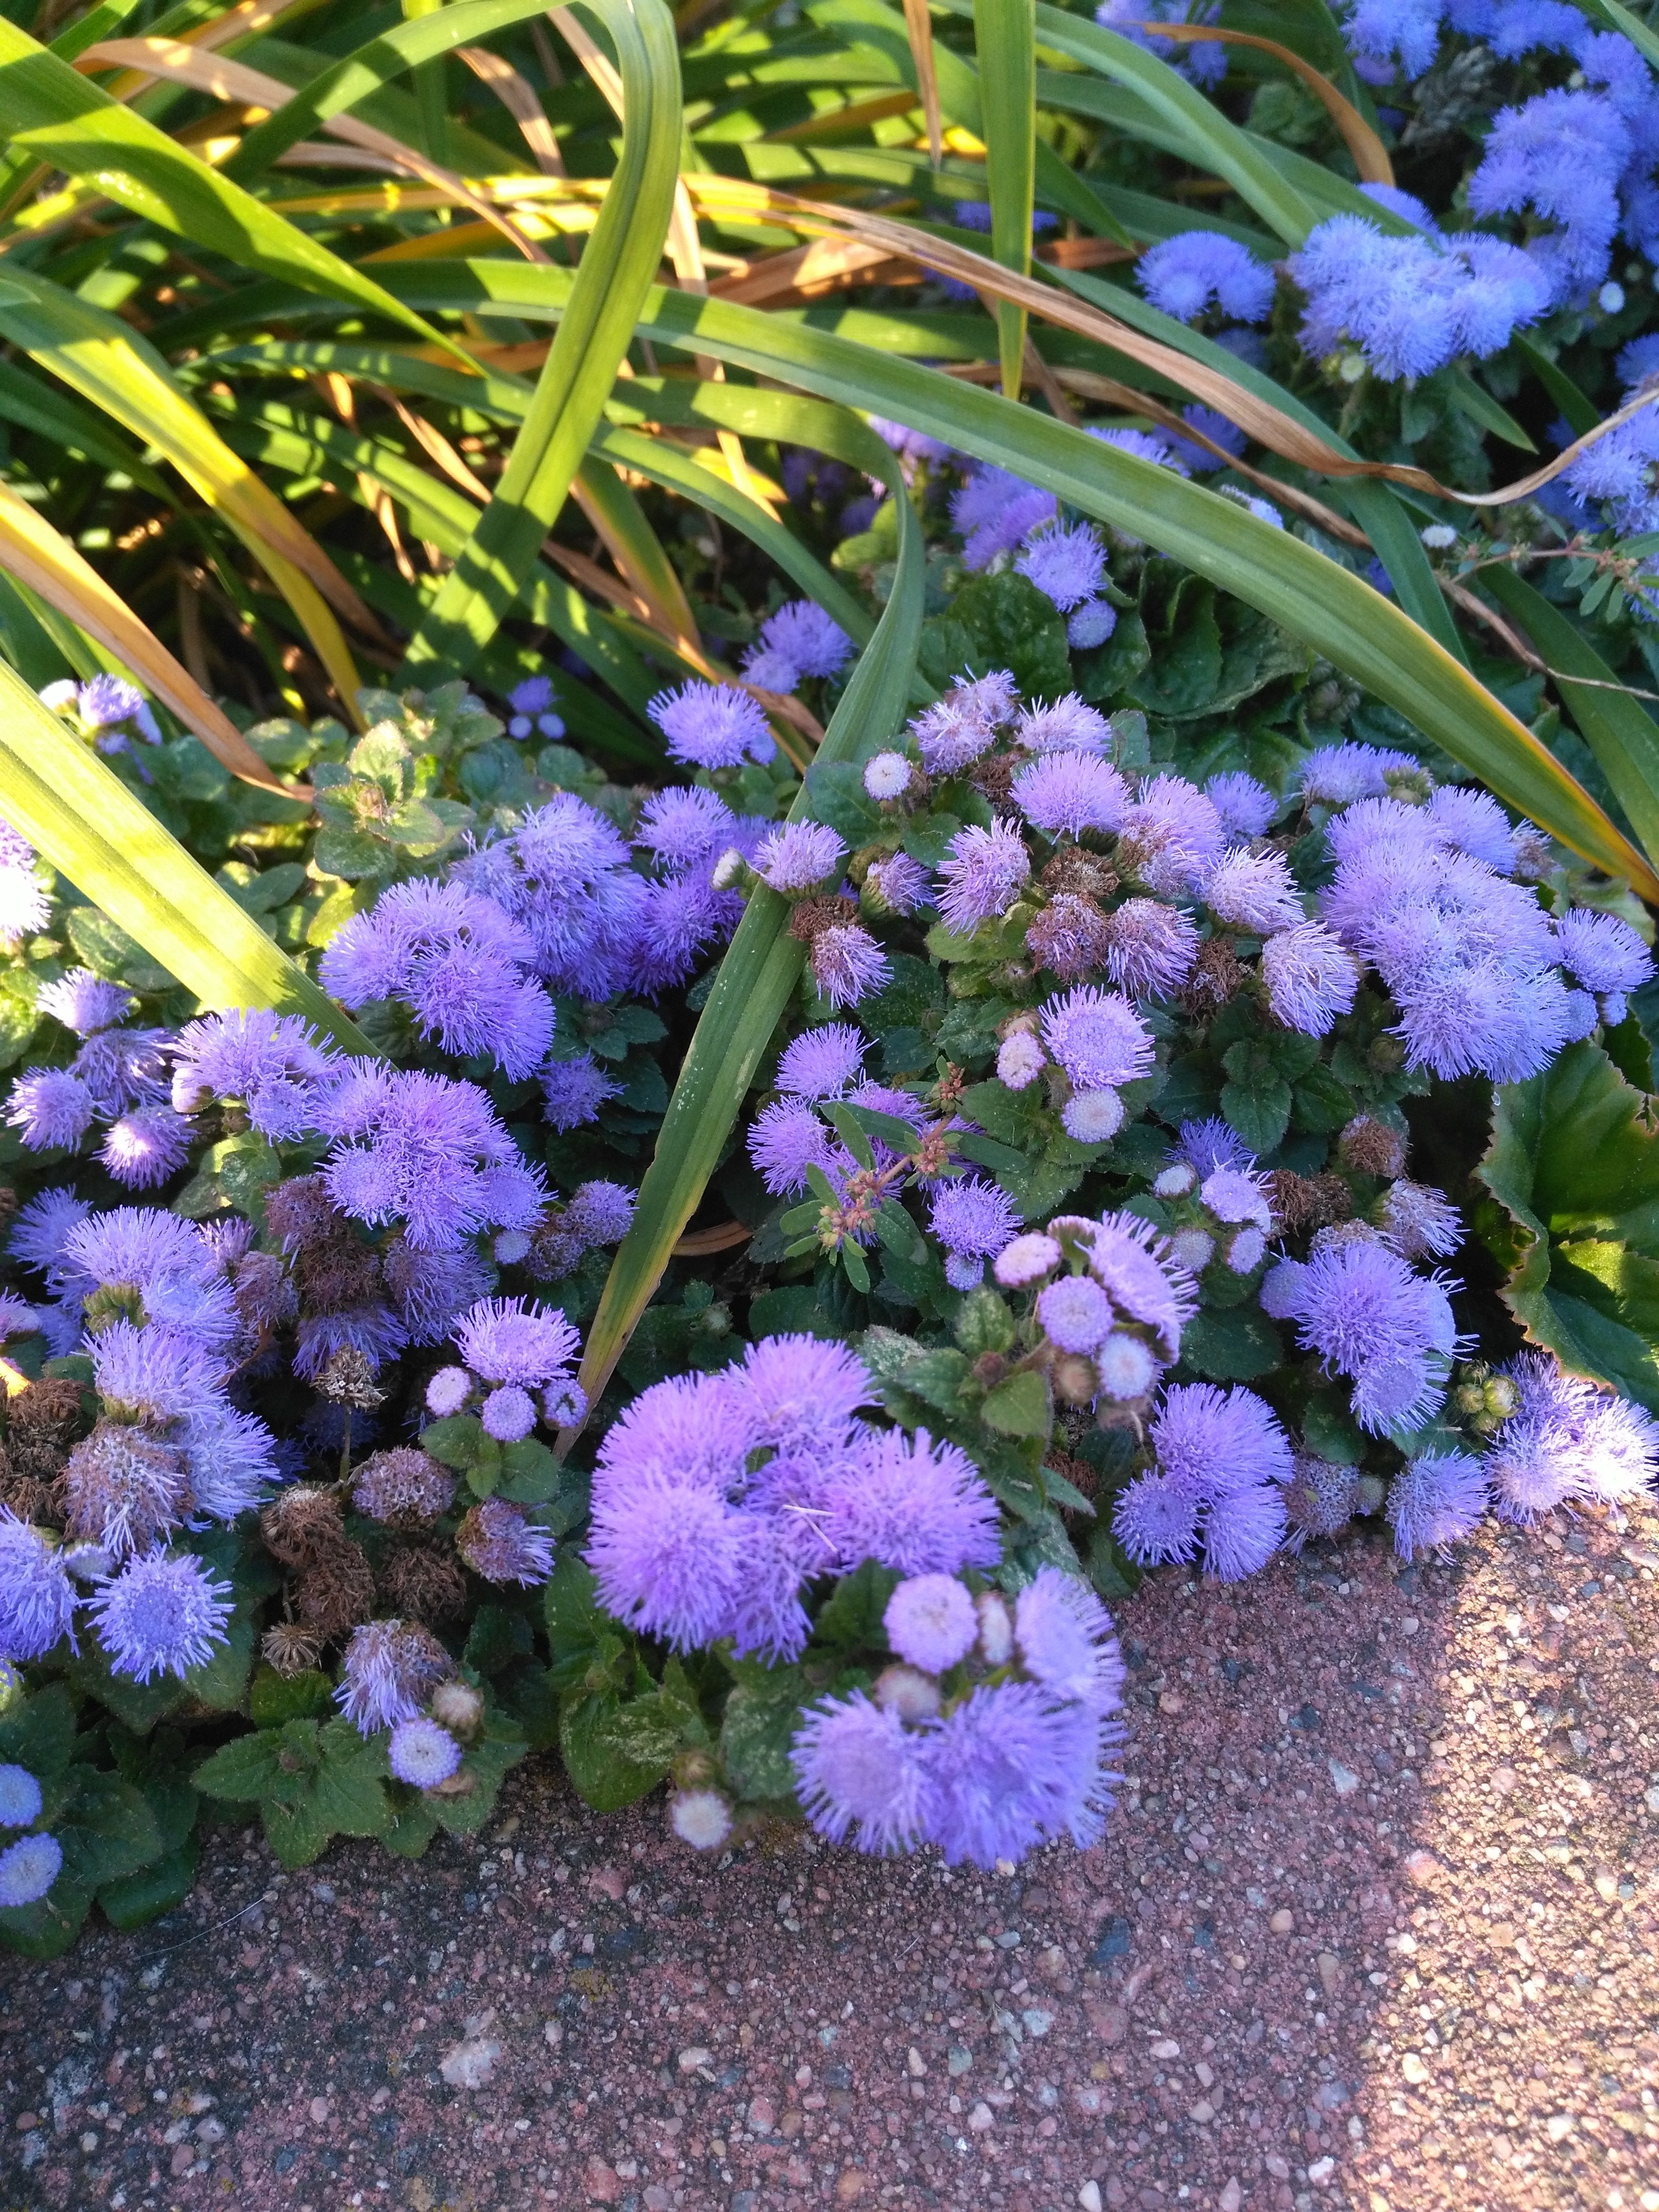 With Its Bright Blue Purple Flowers This Annual Caught Our Eye Blue Danube Floss Flower Ageratum Houstonian Blue And Purple Flowers Purple Flowers Plants